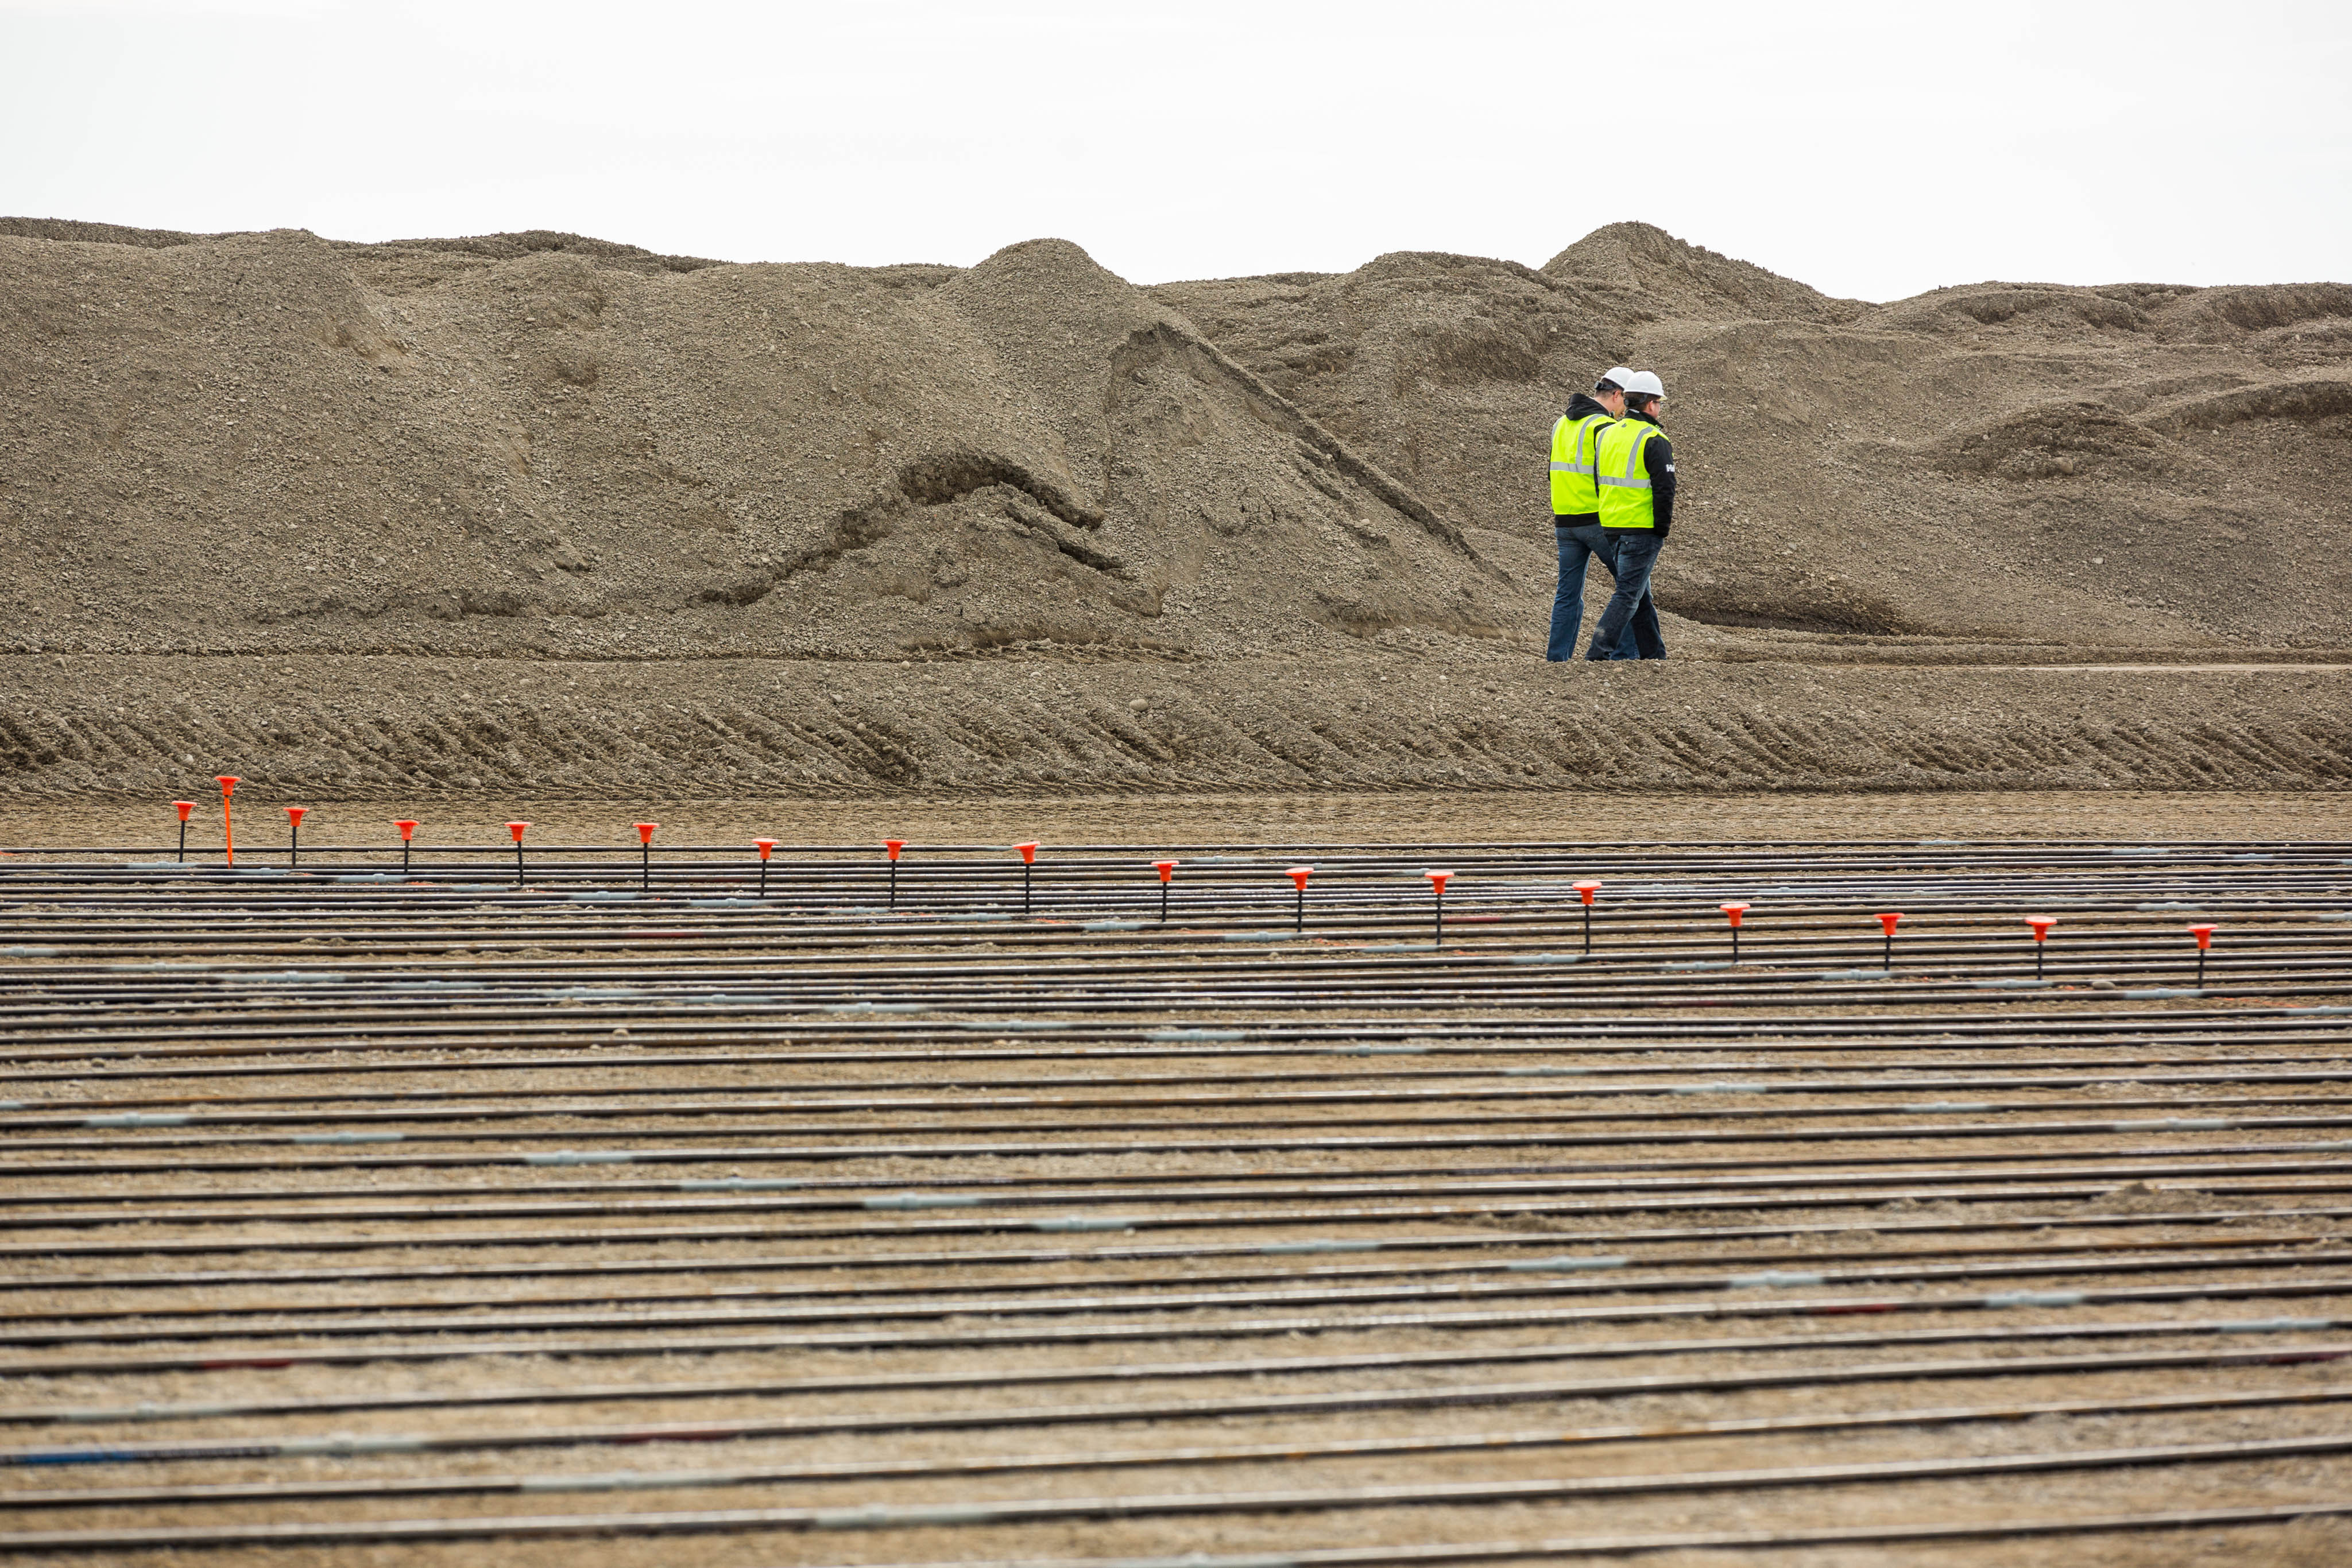 Contractors walk around the site of a new ASRC Energy Services North Slope Maintenance Facility in Deadhorse on Thursday, May 21, 2015. The Arctic Slope Regional Corporation subsidiary is planning for increased activity on Alaska's North Slope oil fields. (Loren Holmes / Alaska Dispatch News)